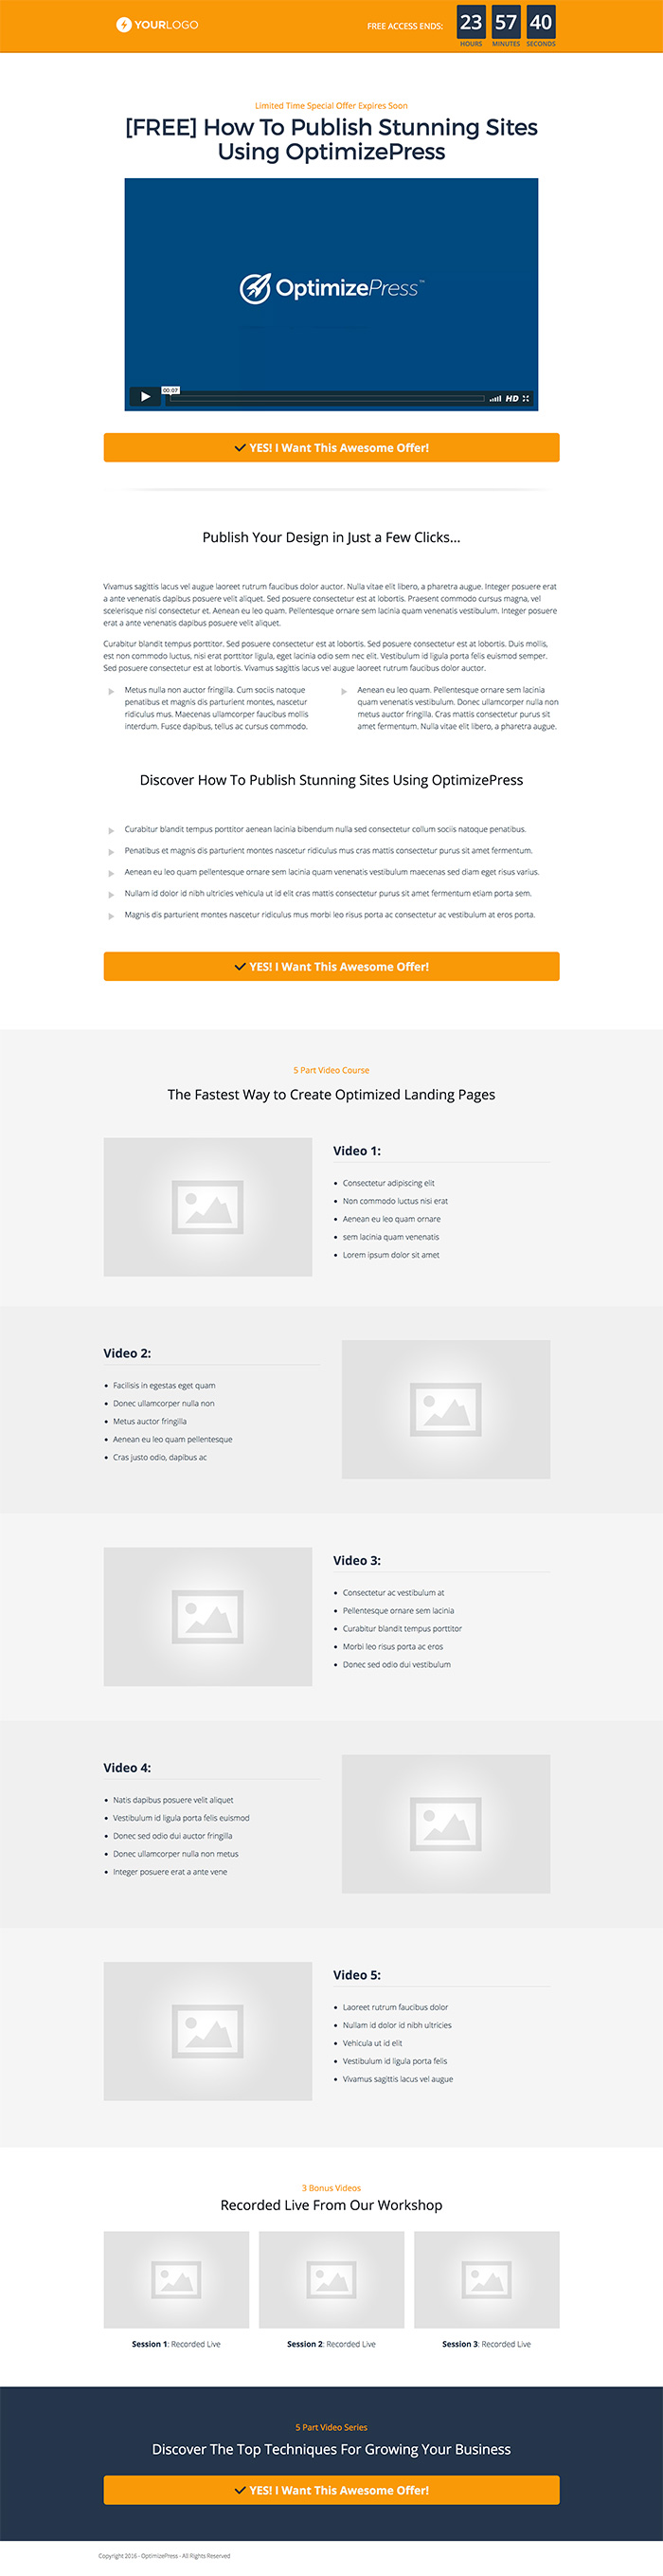 OptimizePress June Template Roundup | Bunker Landing Page